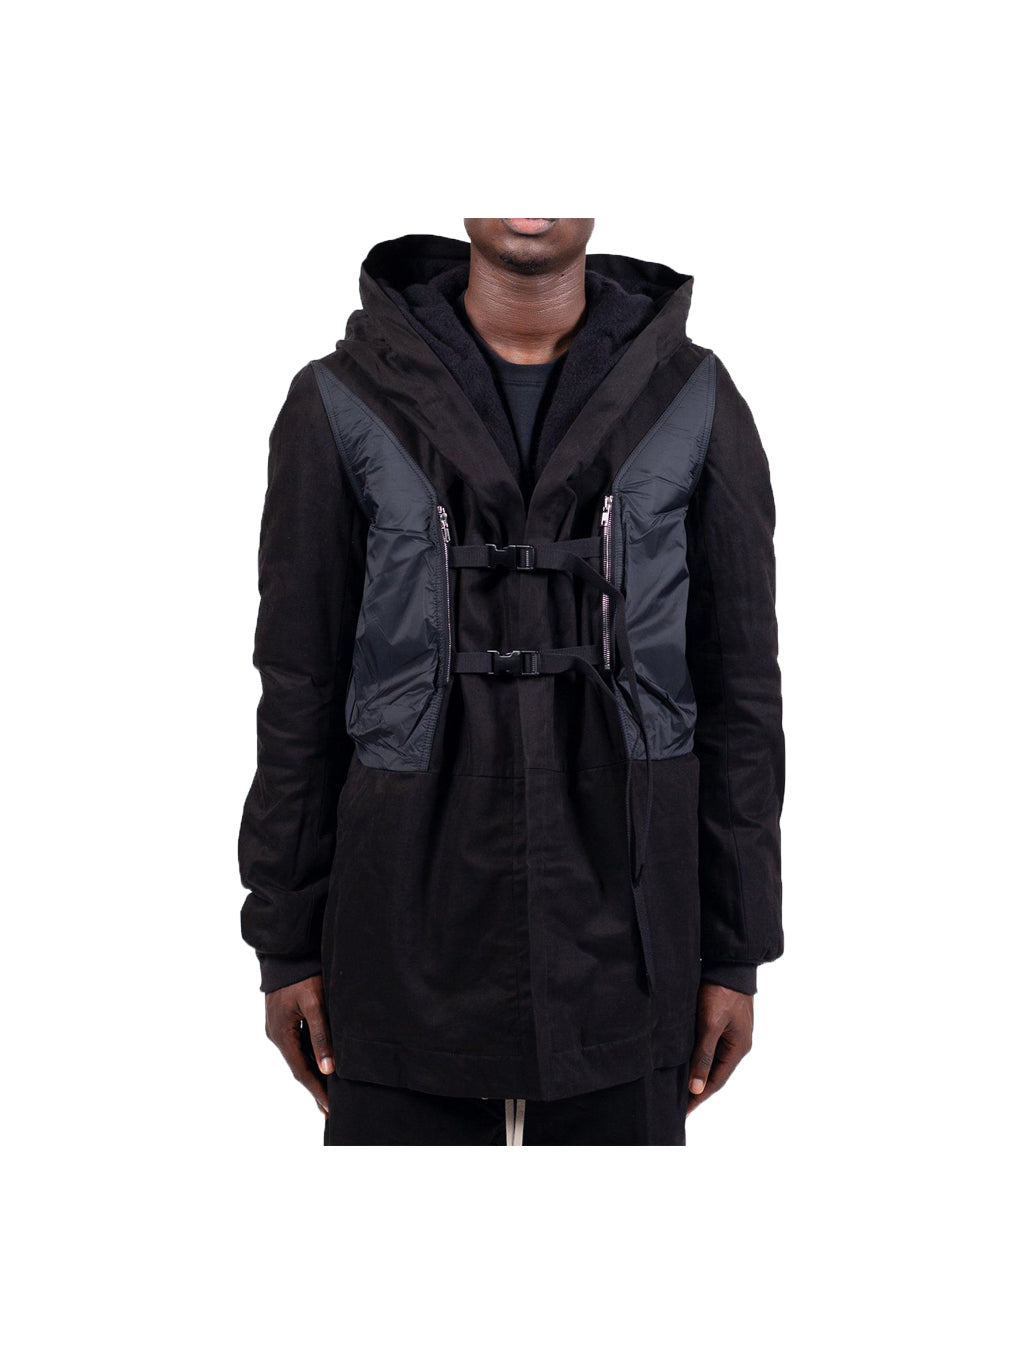 Black Constraint Hooded Jacket